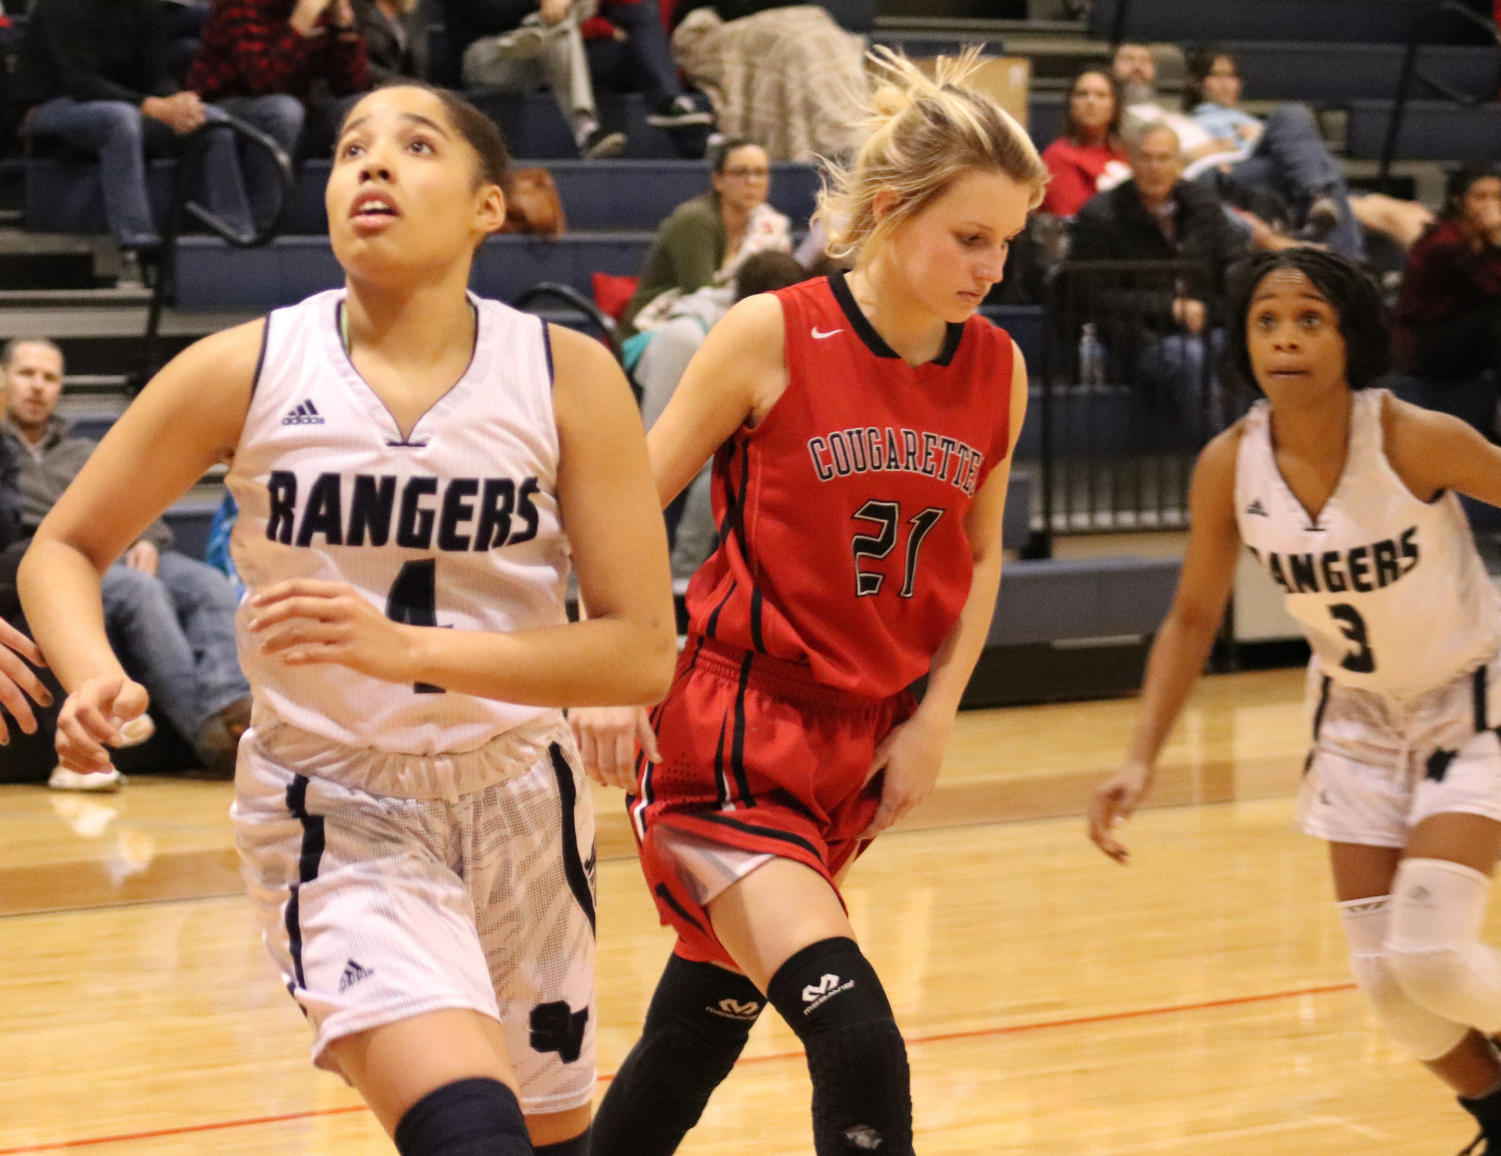 Girls basketball dominated competition early in the season with a combined 16-4 record through their first 20 games. They look to extend their winning streak this Friday against New Braunfels Canyon at 7 p.m. in Cougar Den.